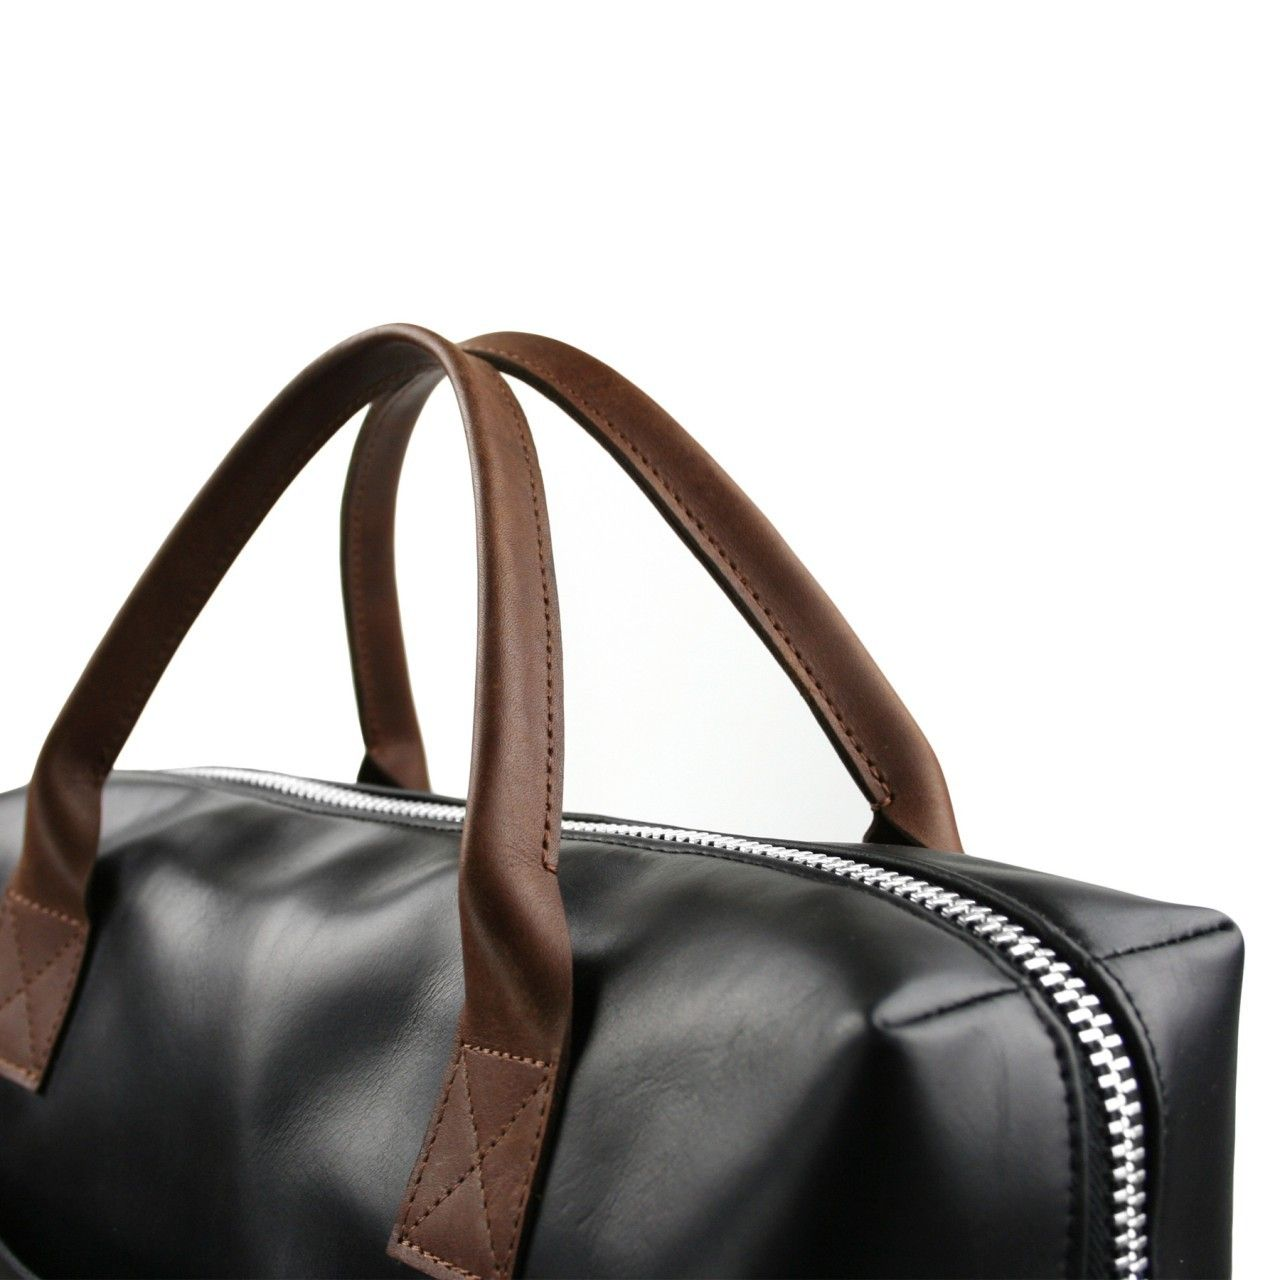 Defy Bags_W34xH34xD10_Luxe_8